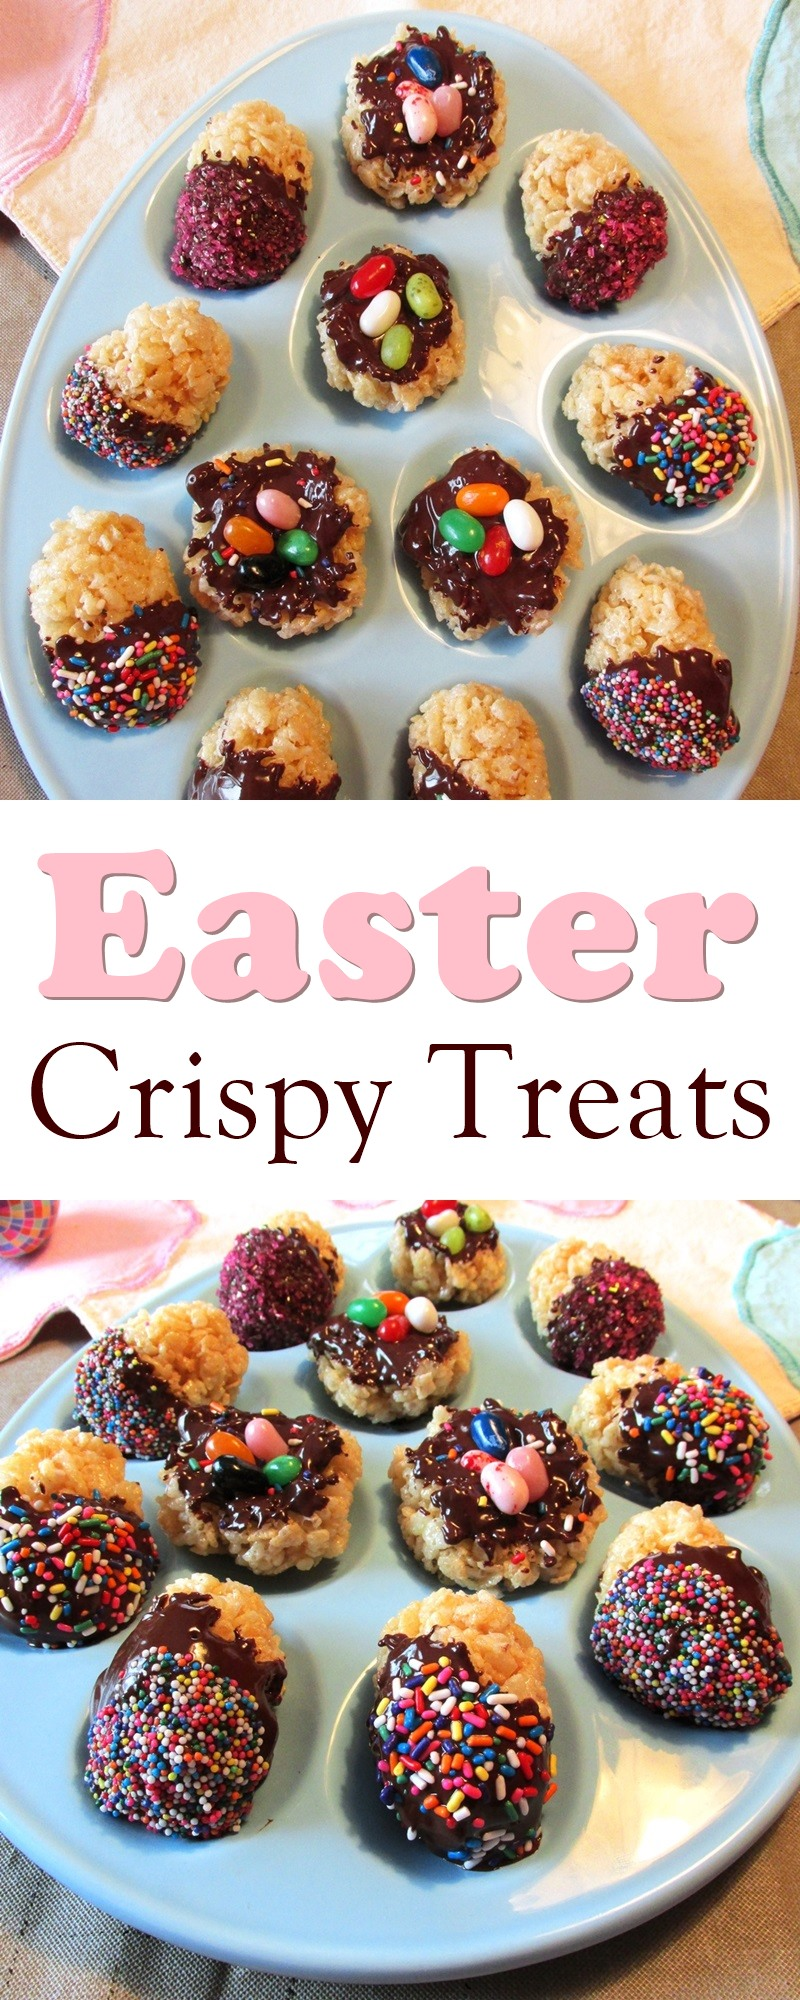 Easter Rice Crispy Treats Recipe - Chocolate-Dipped Eggs and Nests (dairy-free, gluten-free, nut-free, vegan optional)